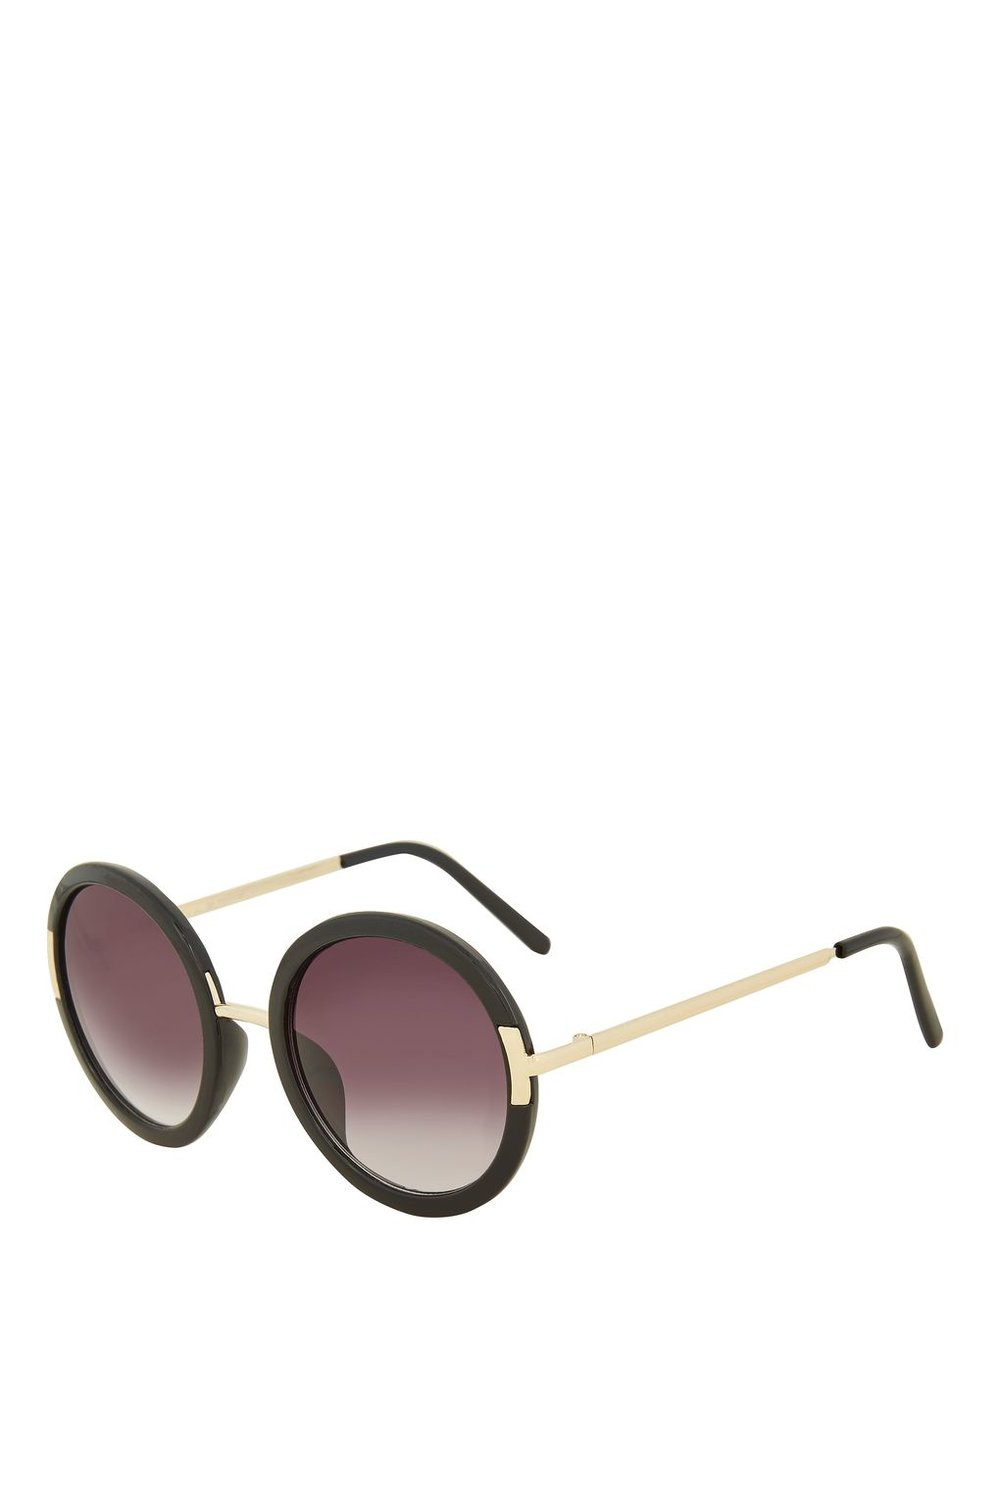 Lolita 60s Round Frame Sunglasses £16.00 at Topshop